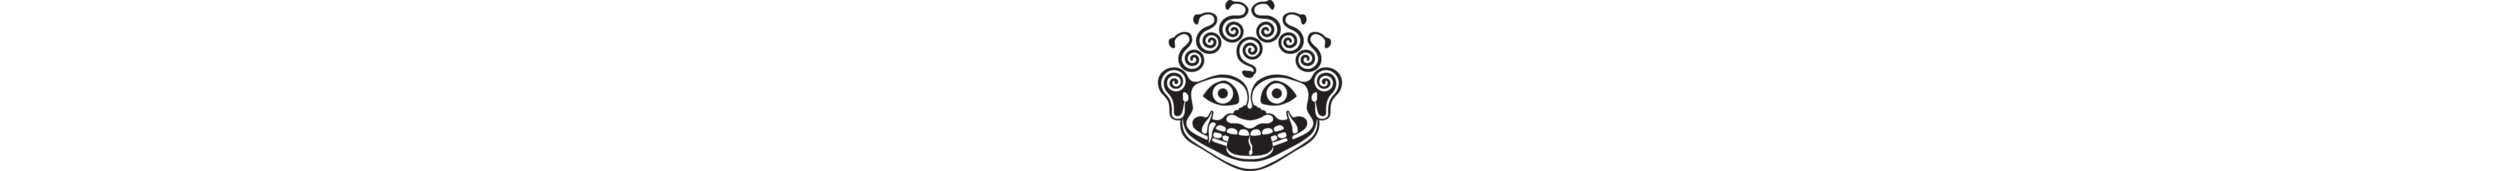 grinning+Medusa very small copy.png